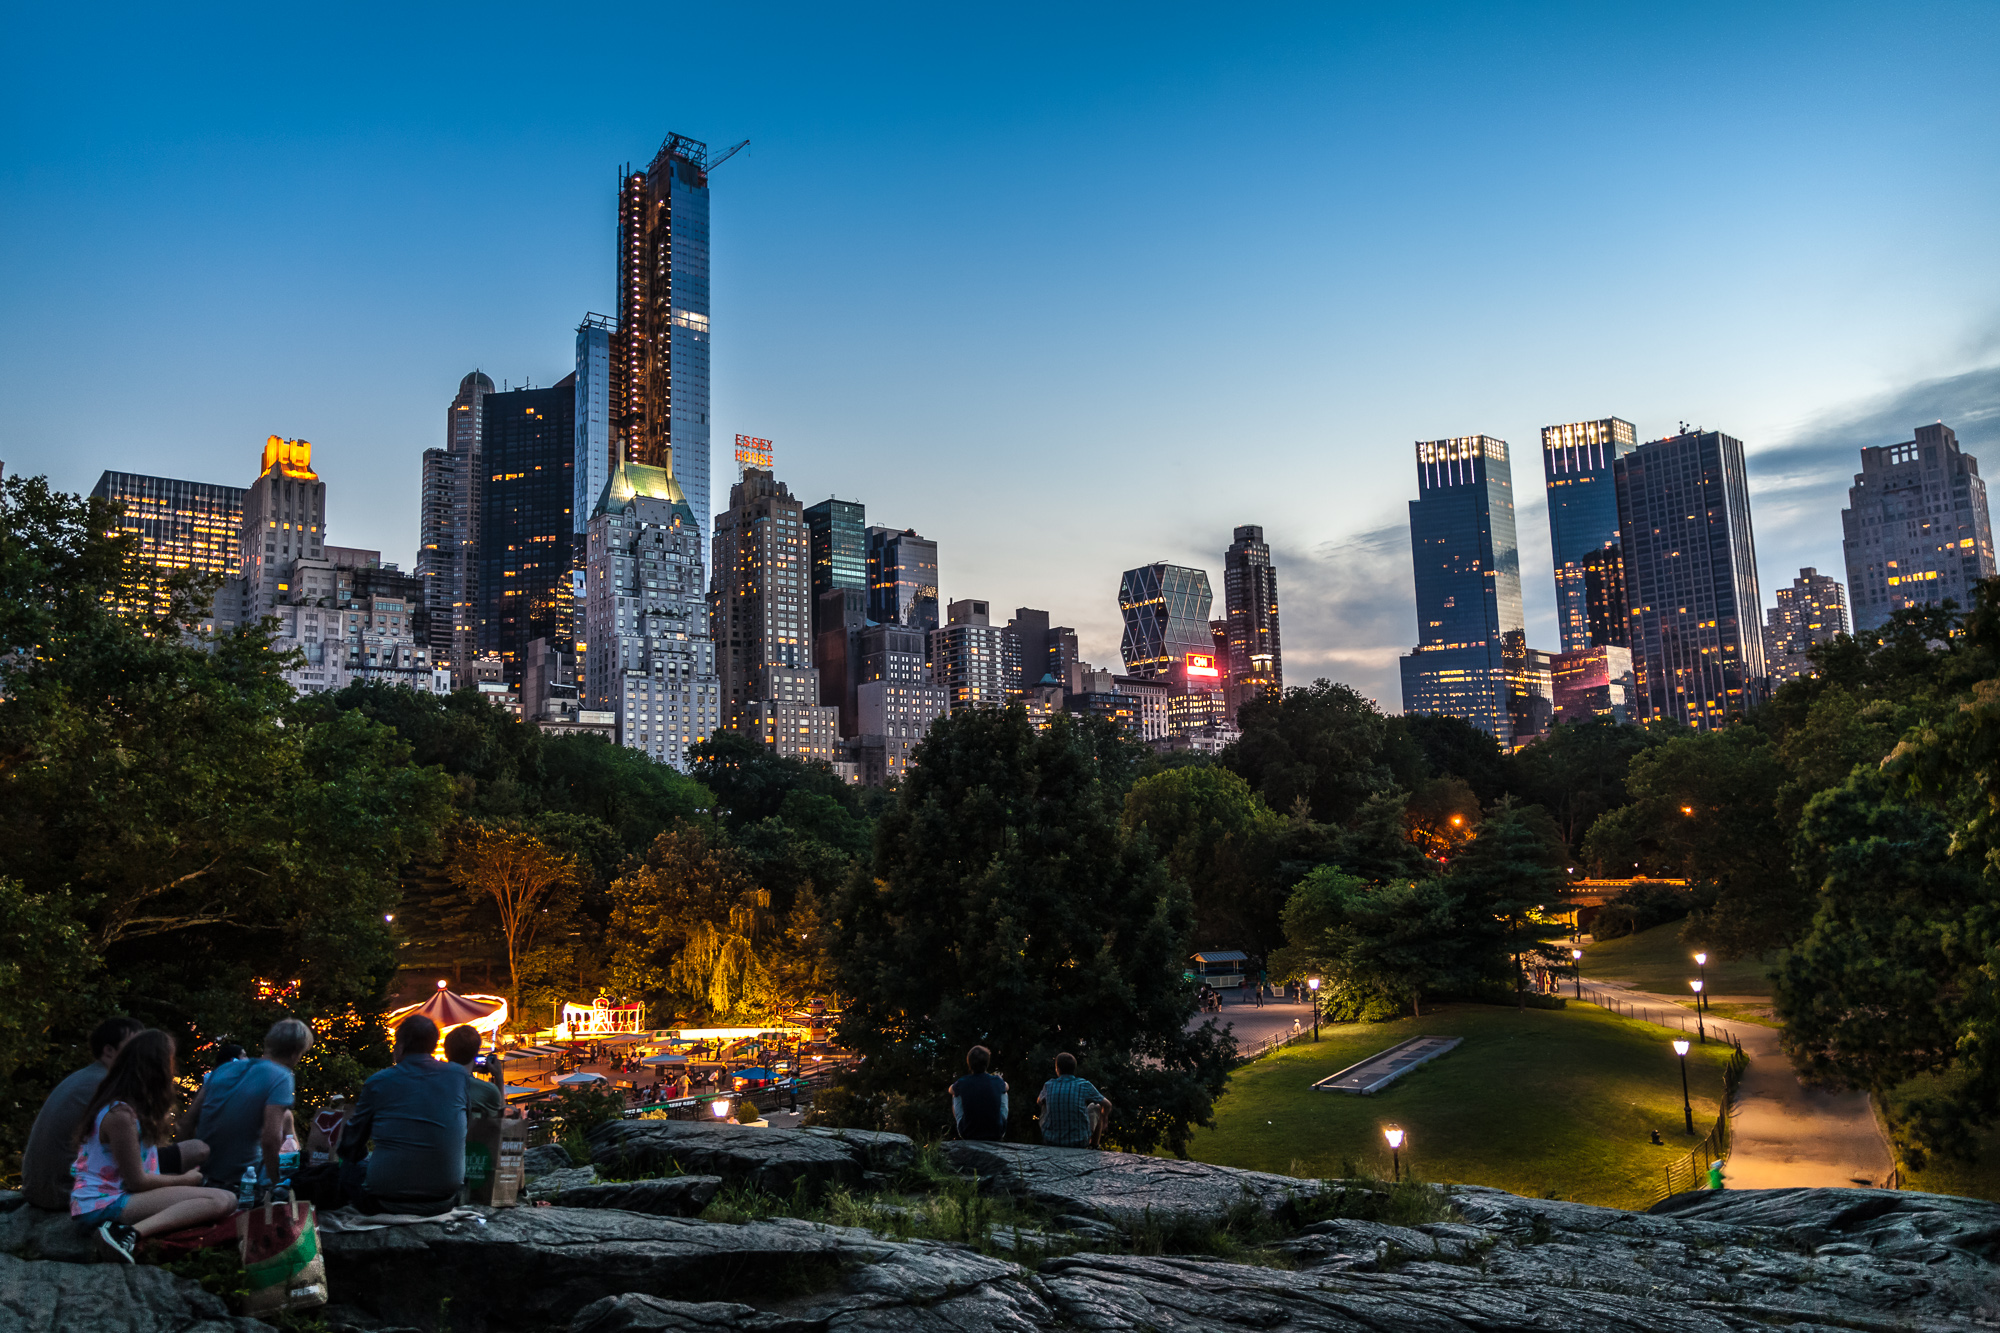 Sunset at central park by wtek79 on deviantart for Things to do in central park today